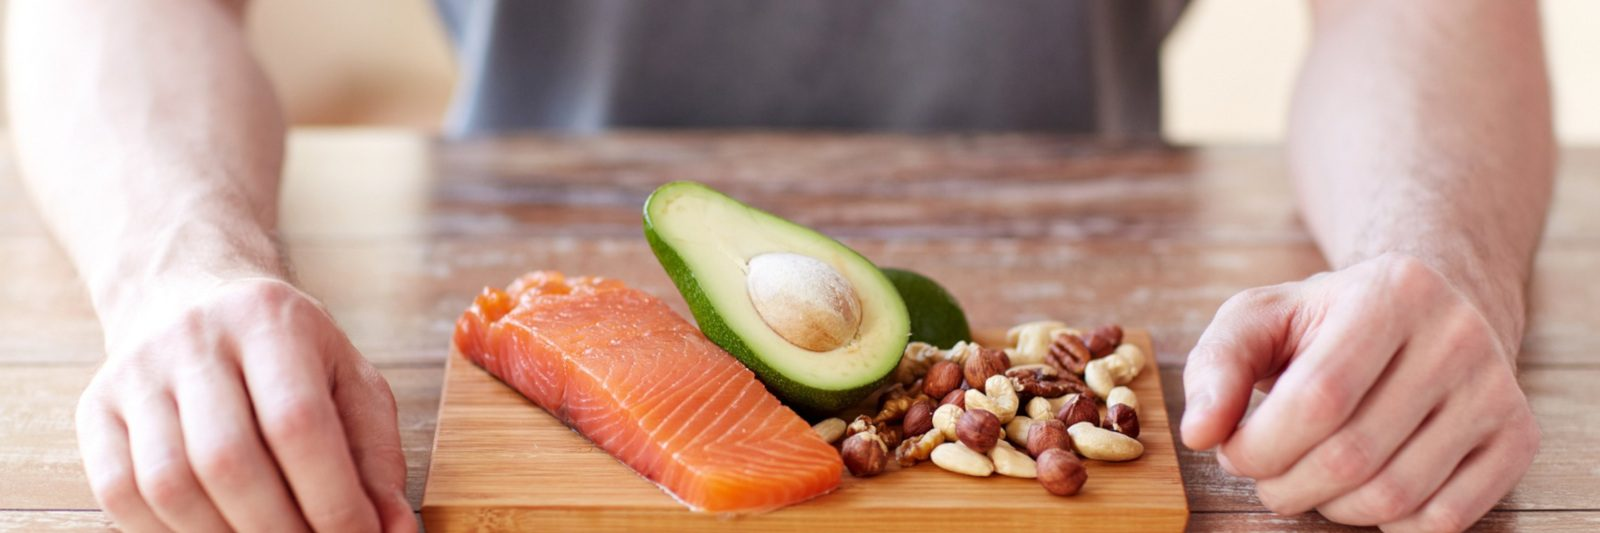 6 Pack Abs Diet Fish Avocado Nuts